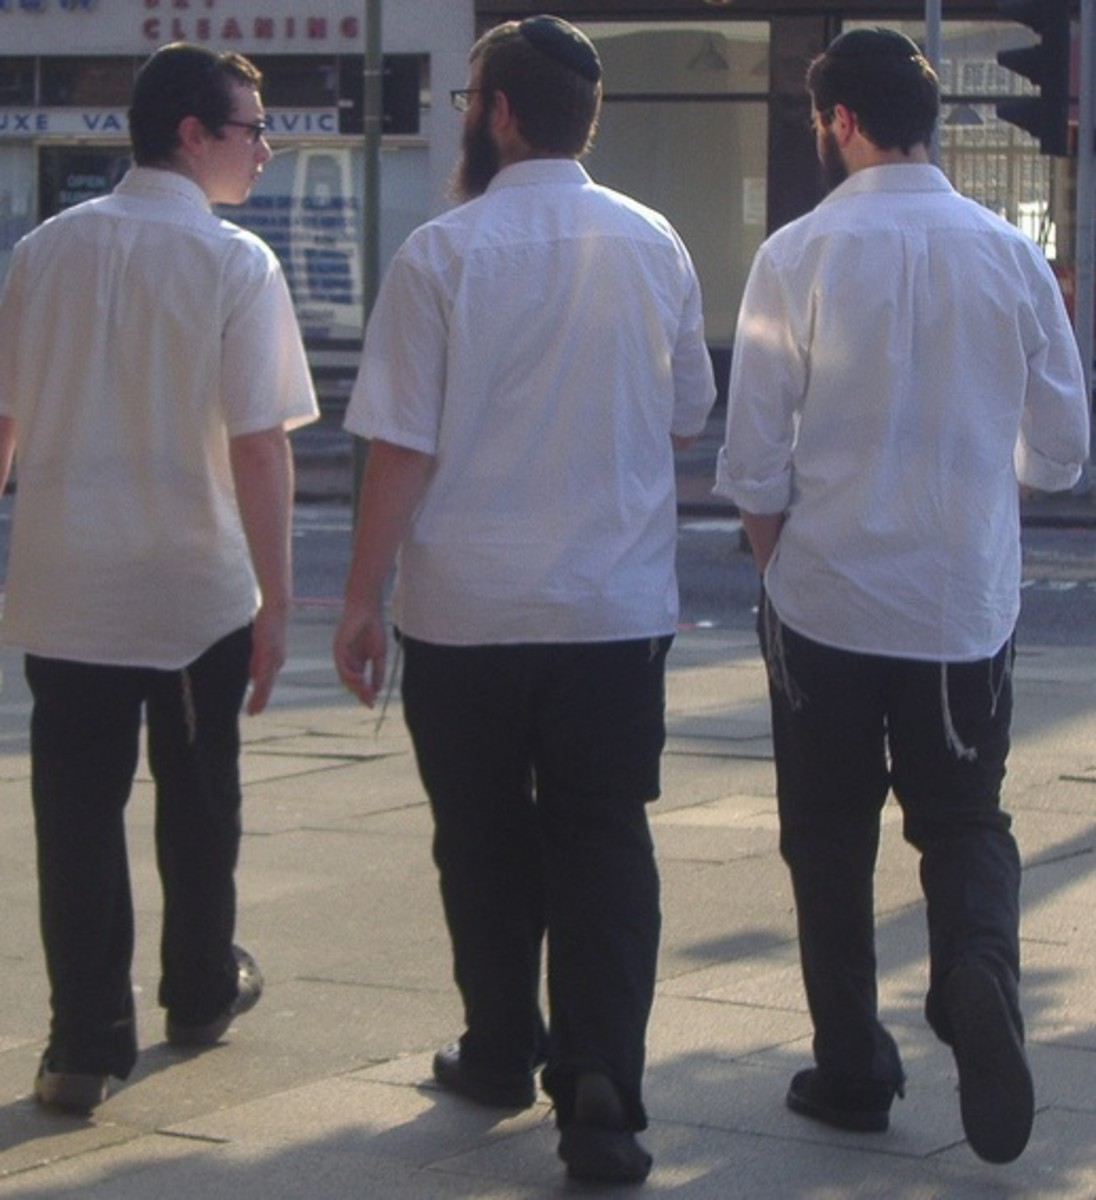 Orthodox men dressed Israeli-style. This photo was not taken on Shabbat, so they are not as neat as they would be for going to shul.